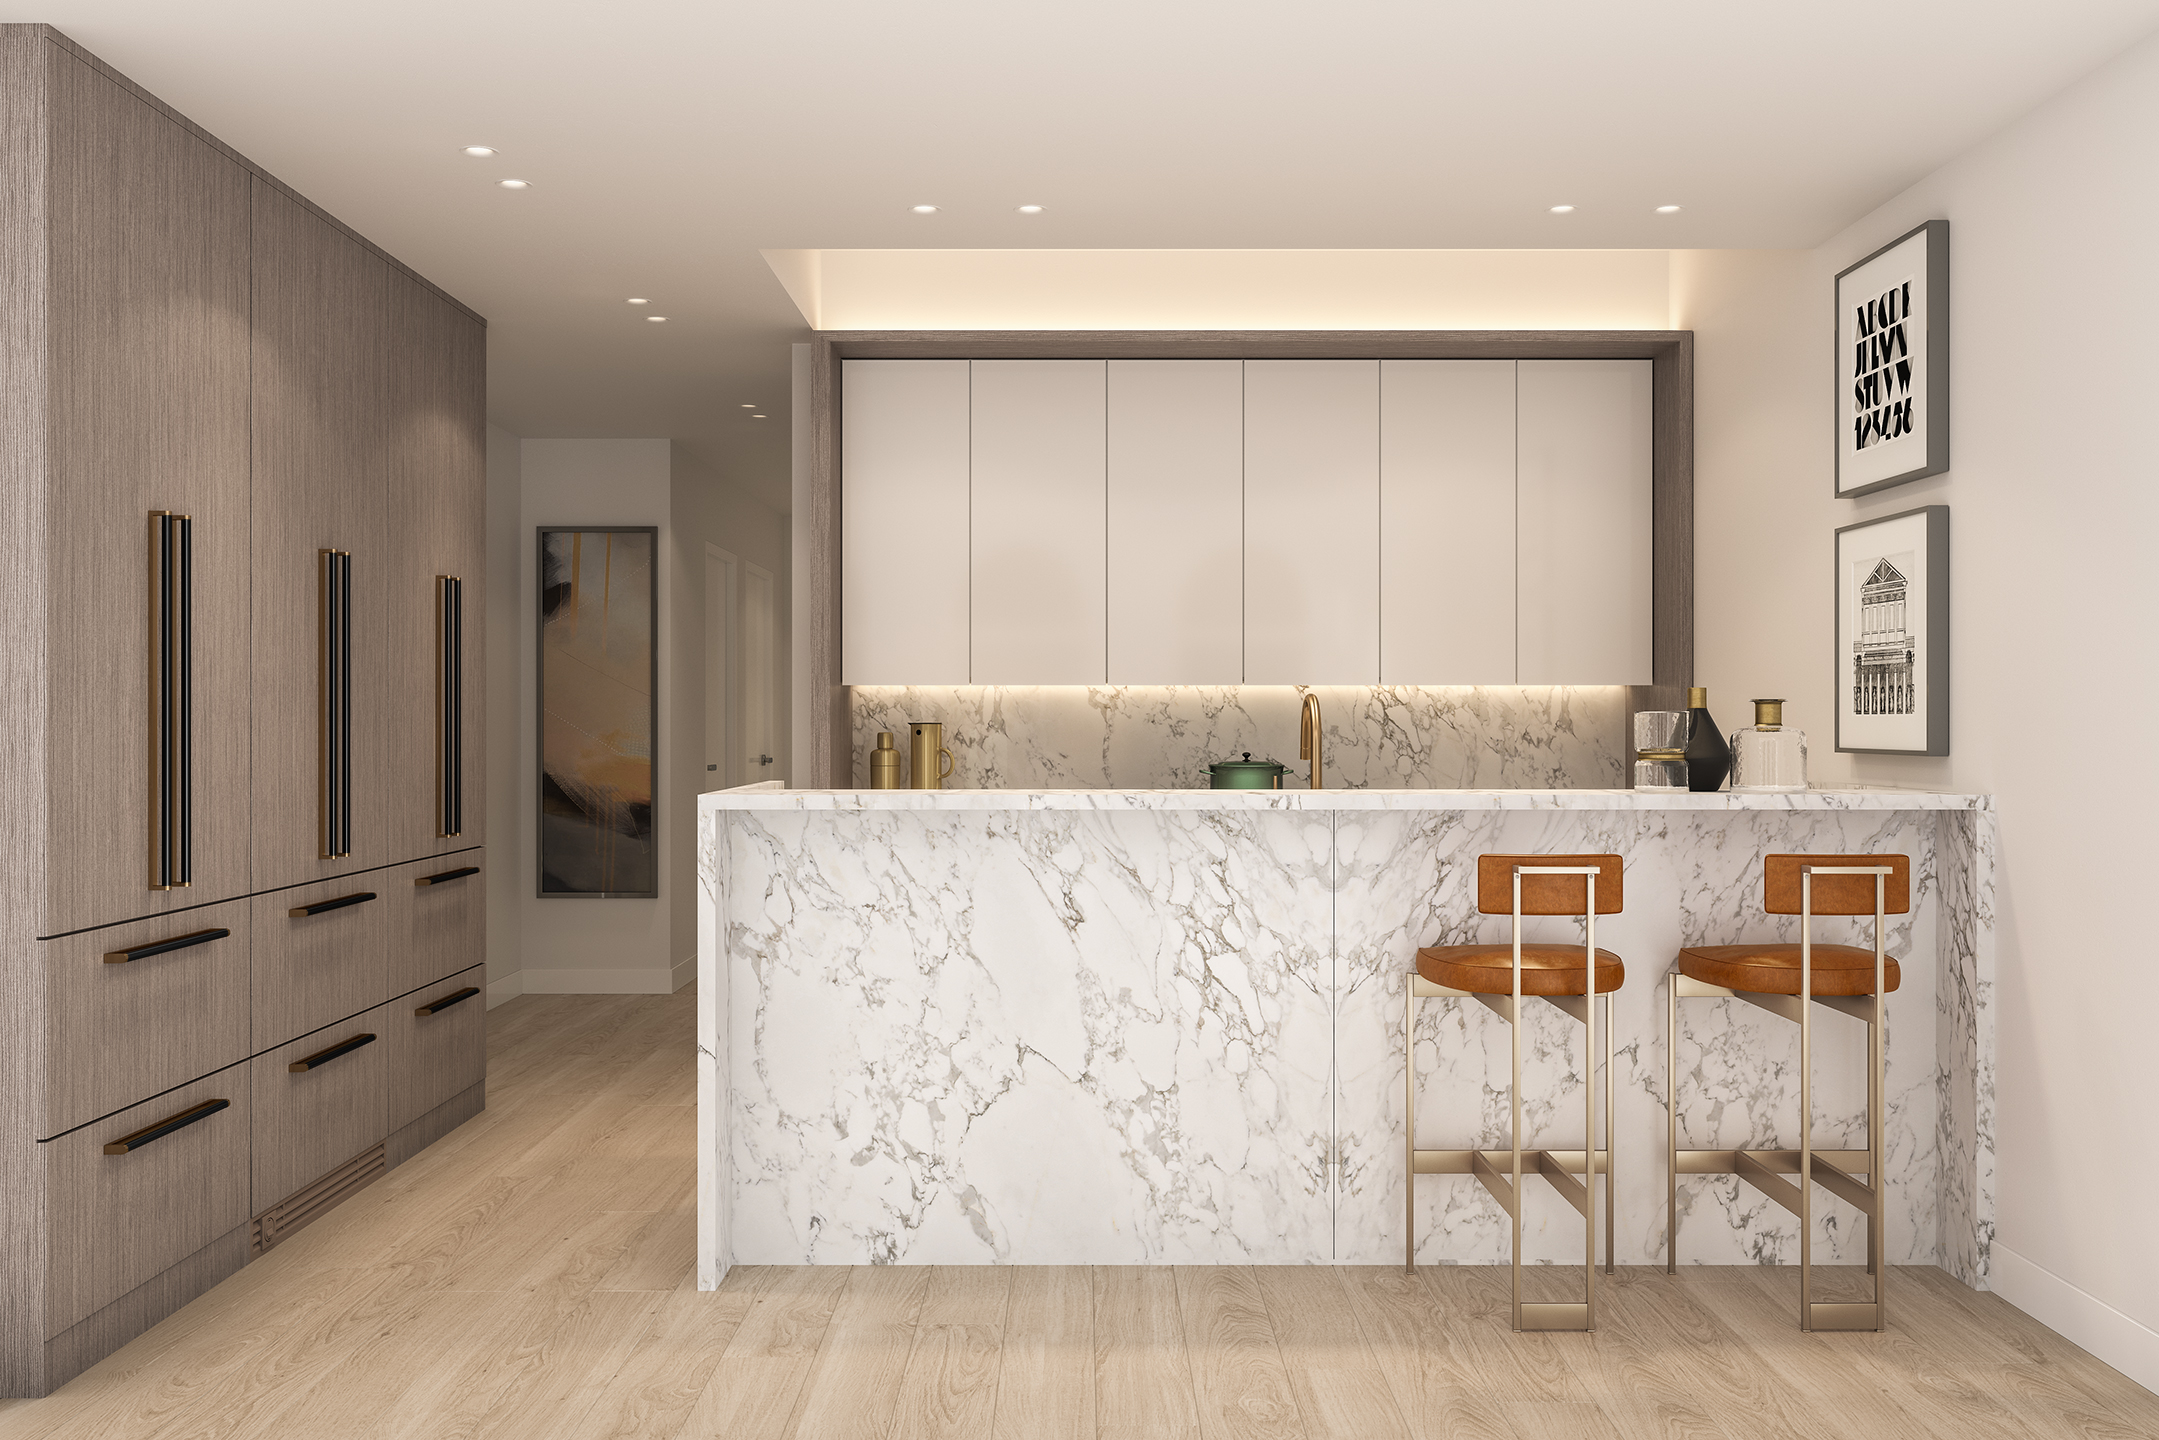 Parlour Brooklyn Kitchen Rendering